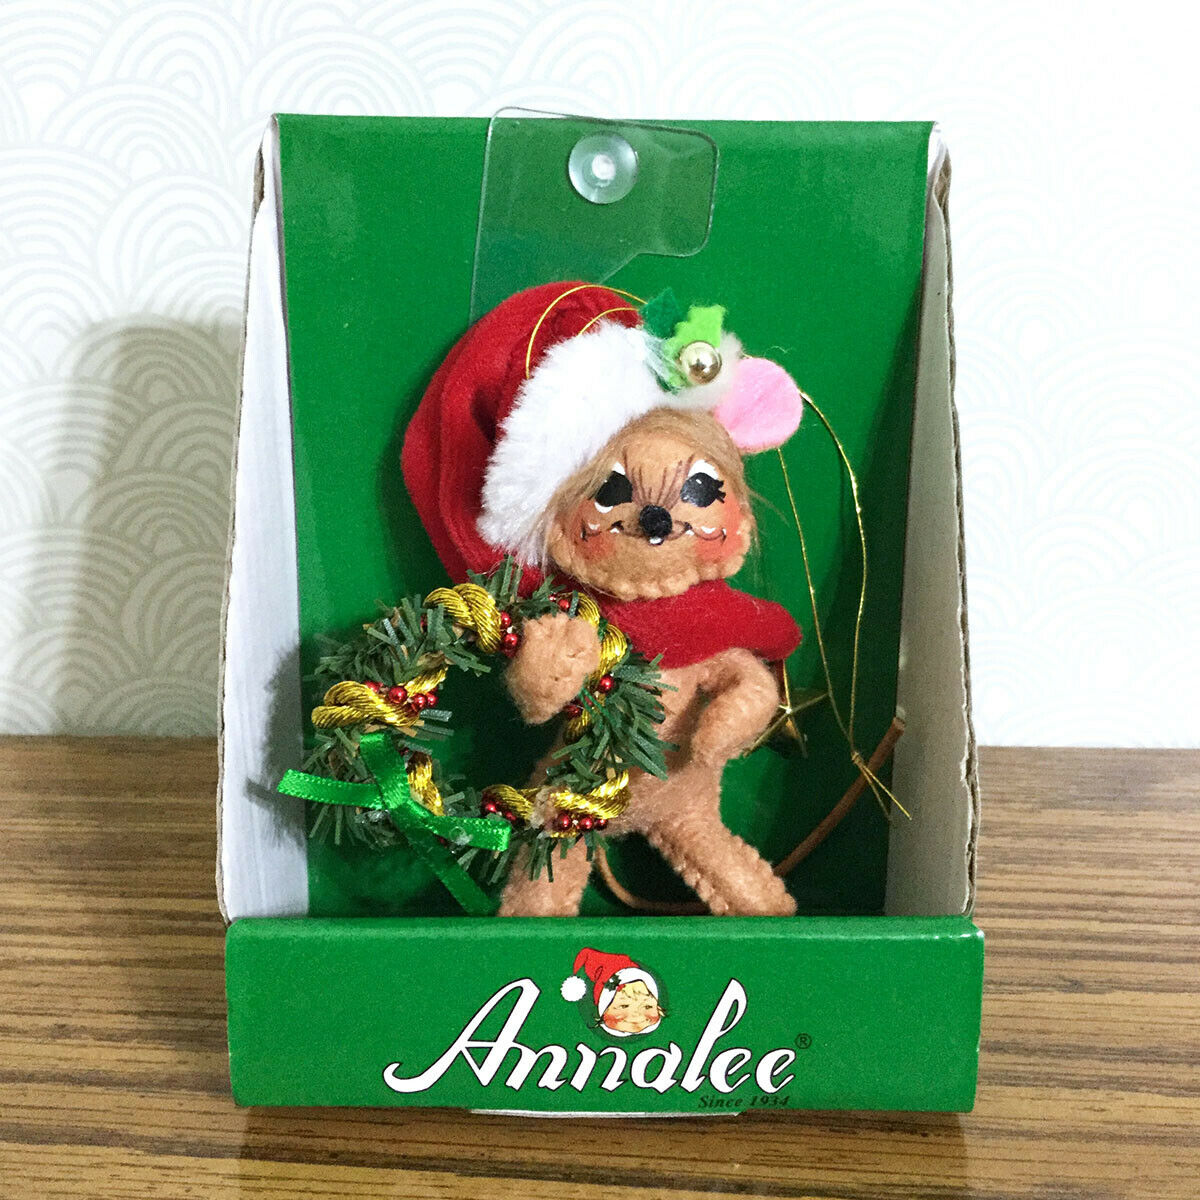 Annalee Christmas Ornament Mouse Elf Gingerbread Angel  Holiday Winter Retired